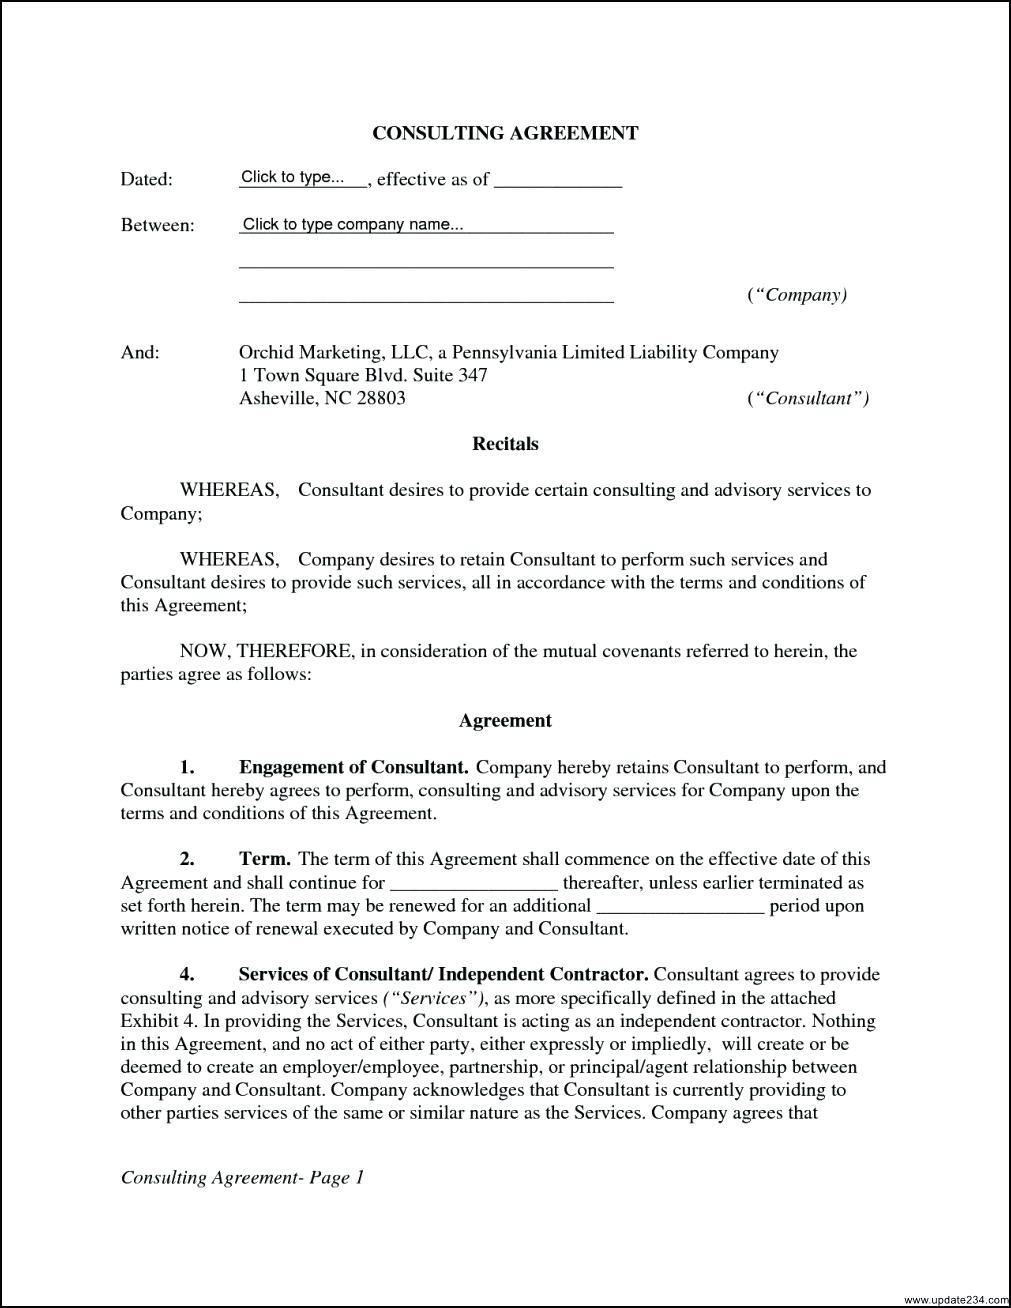 002 Consulting Contract Template Free Picture Collection Website It